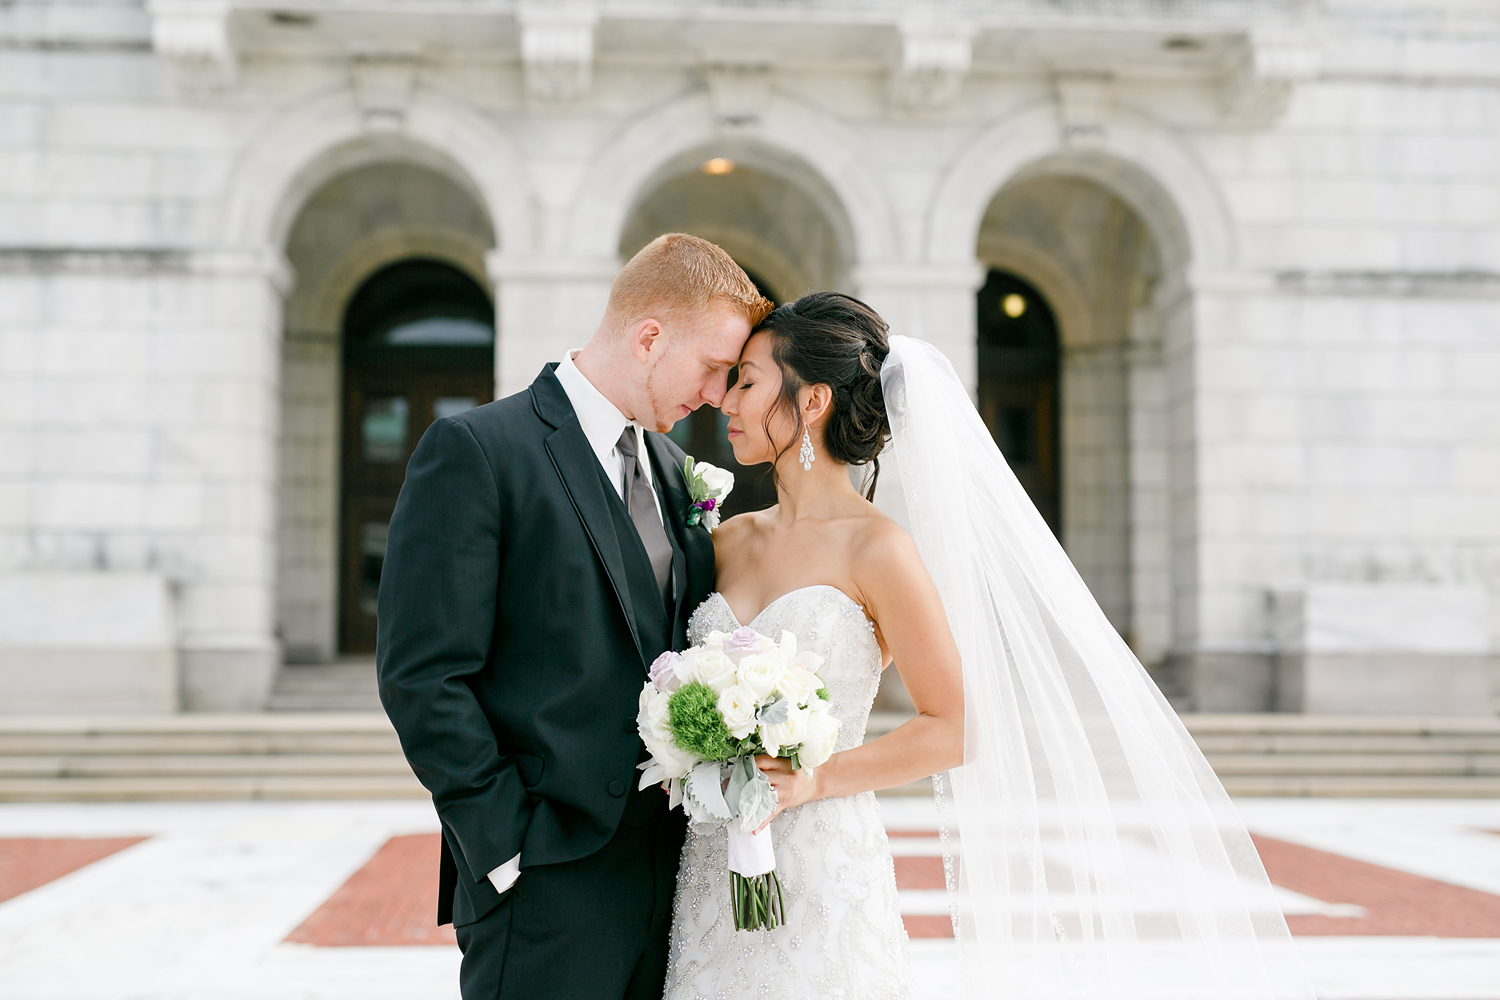 Wedding-Photographers-In-Newport-RI-21.jpg